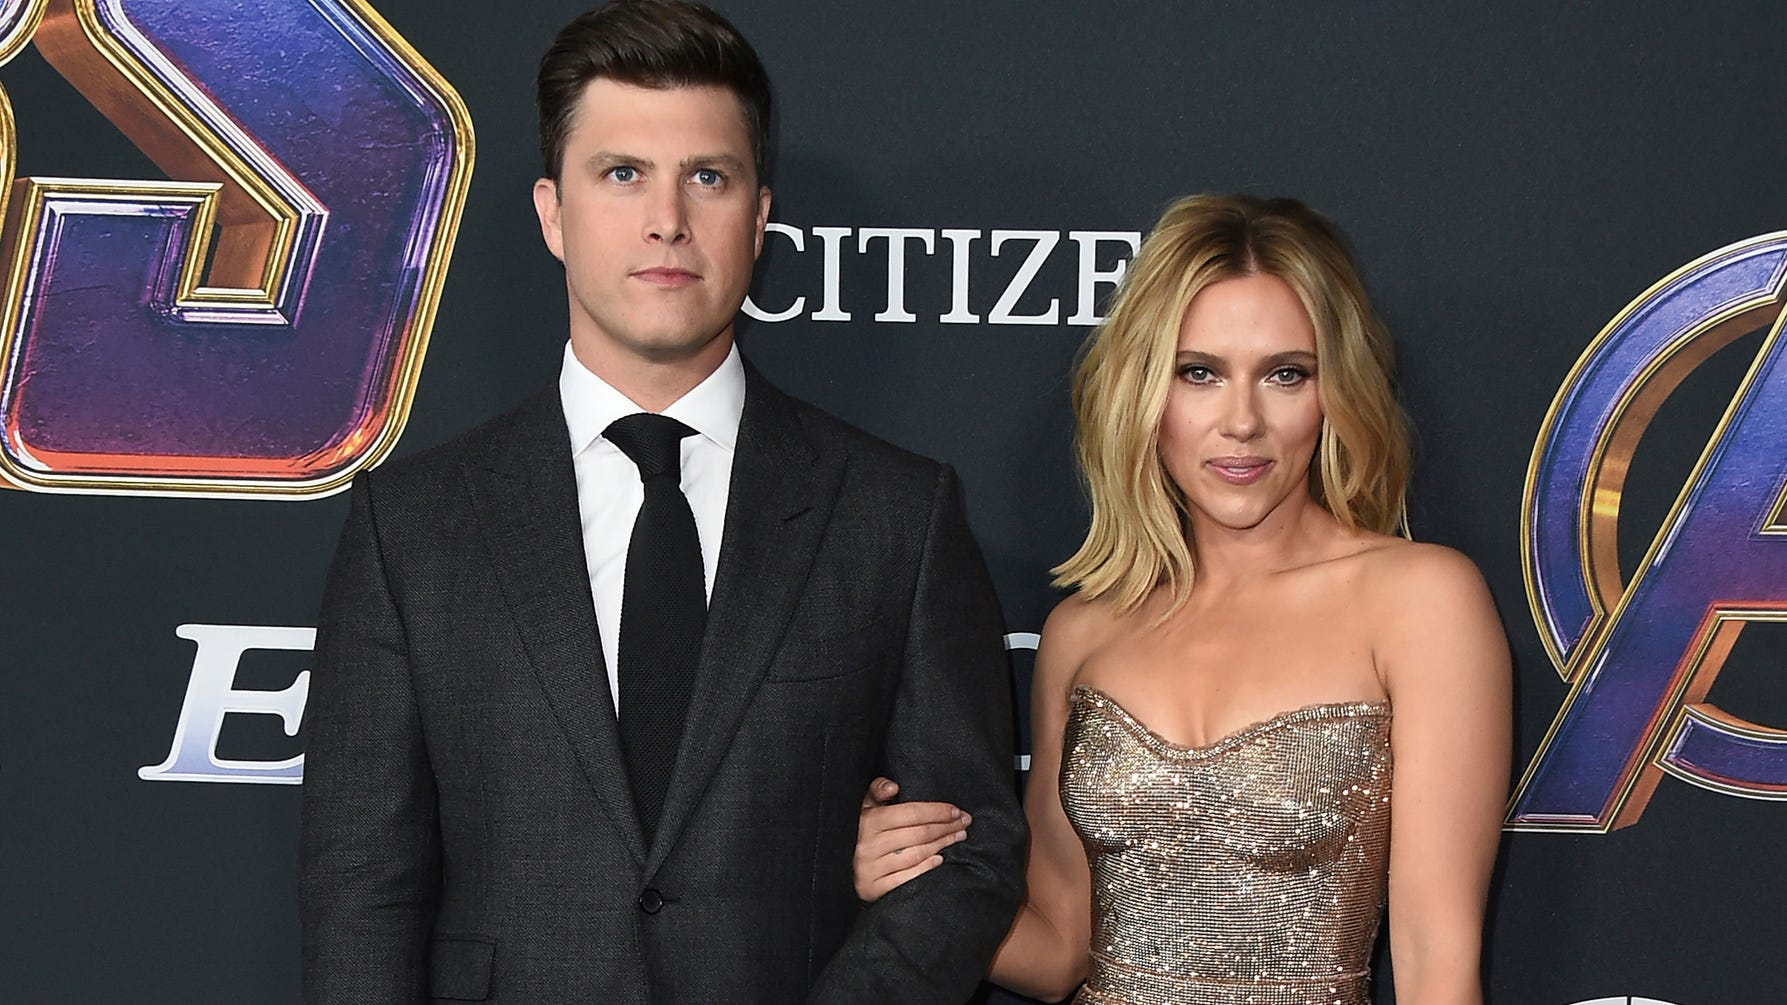 Scarlett Johansson And Snl S Colin Jost Are Engaged